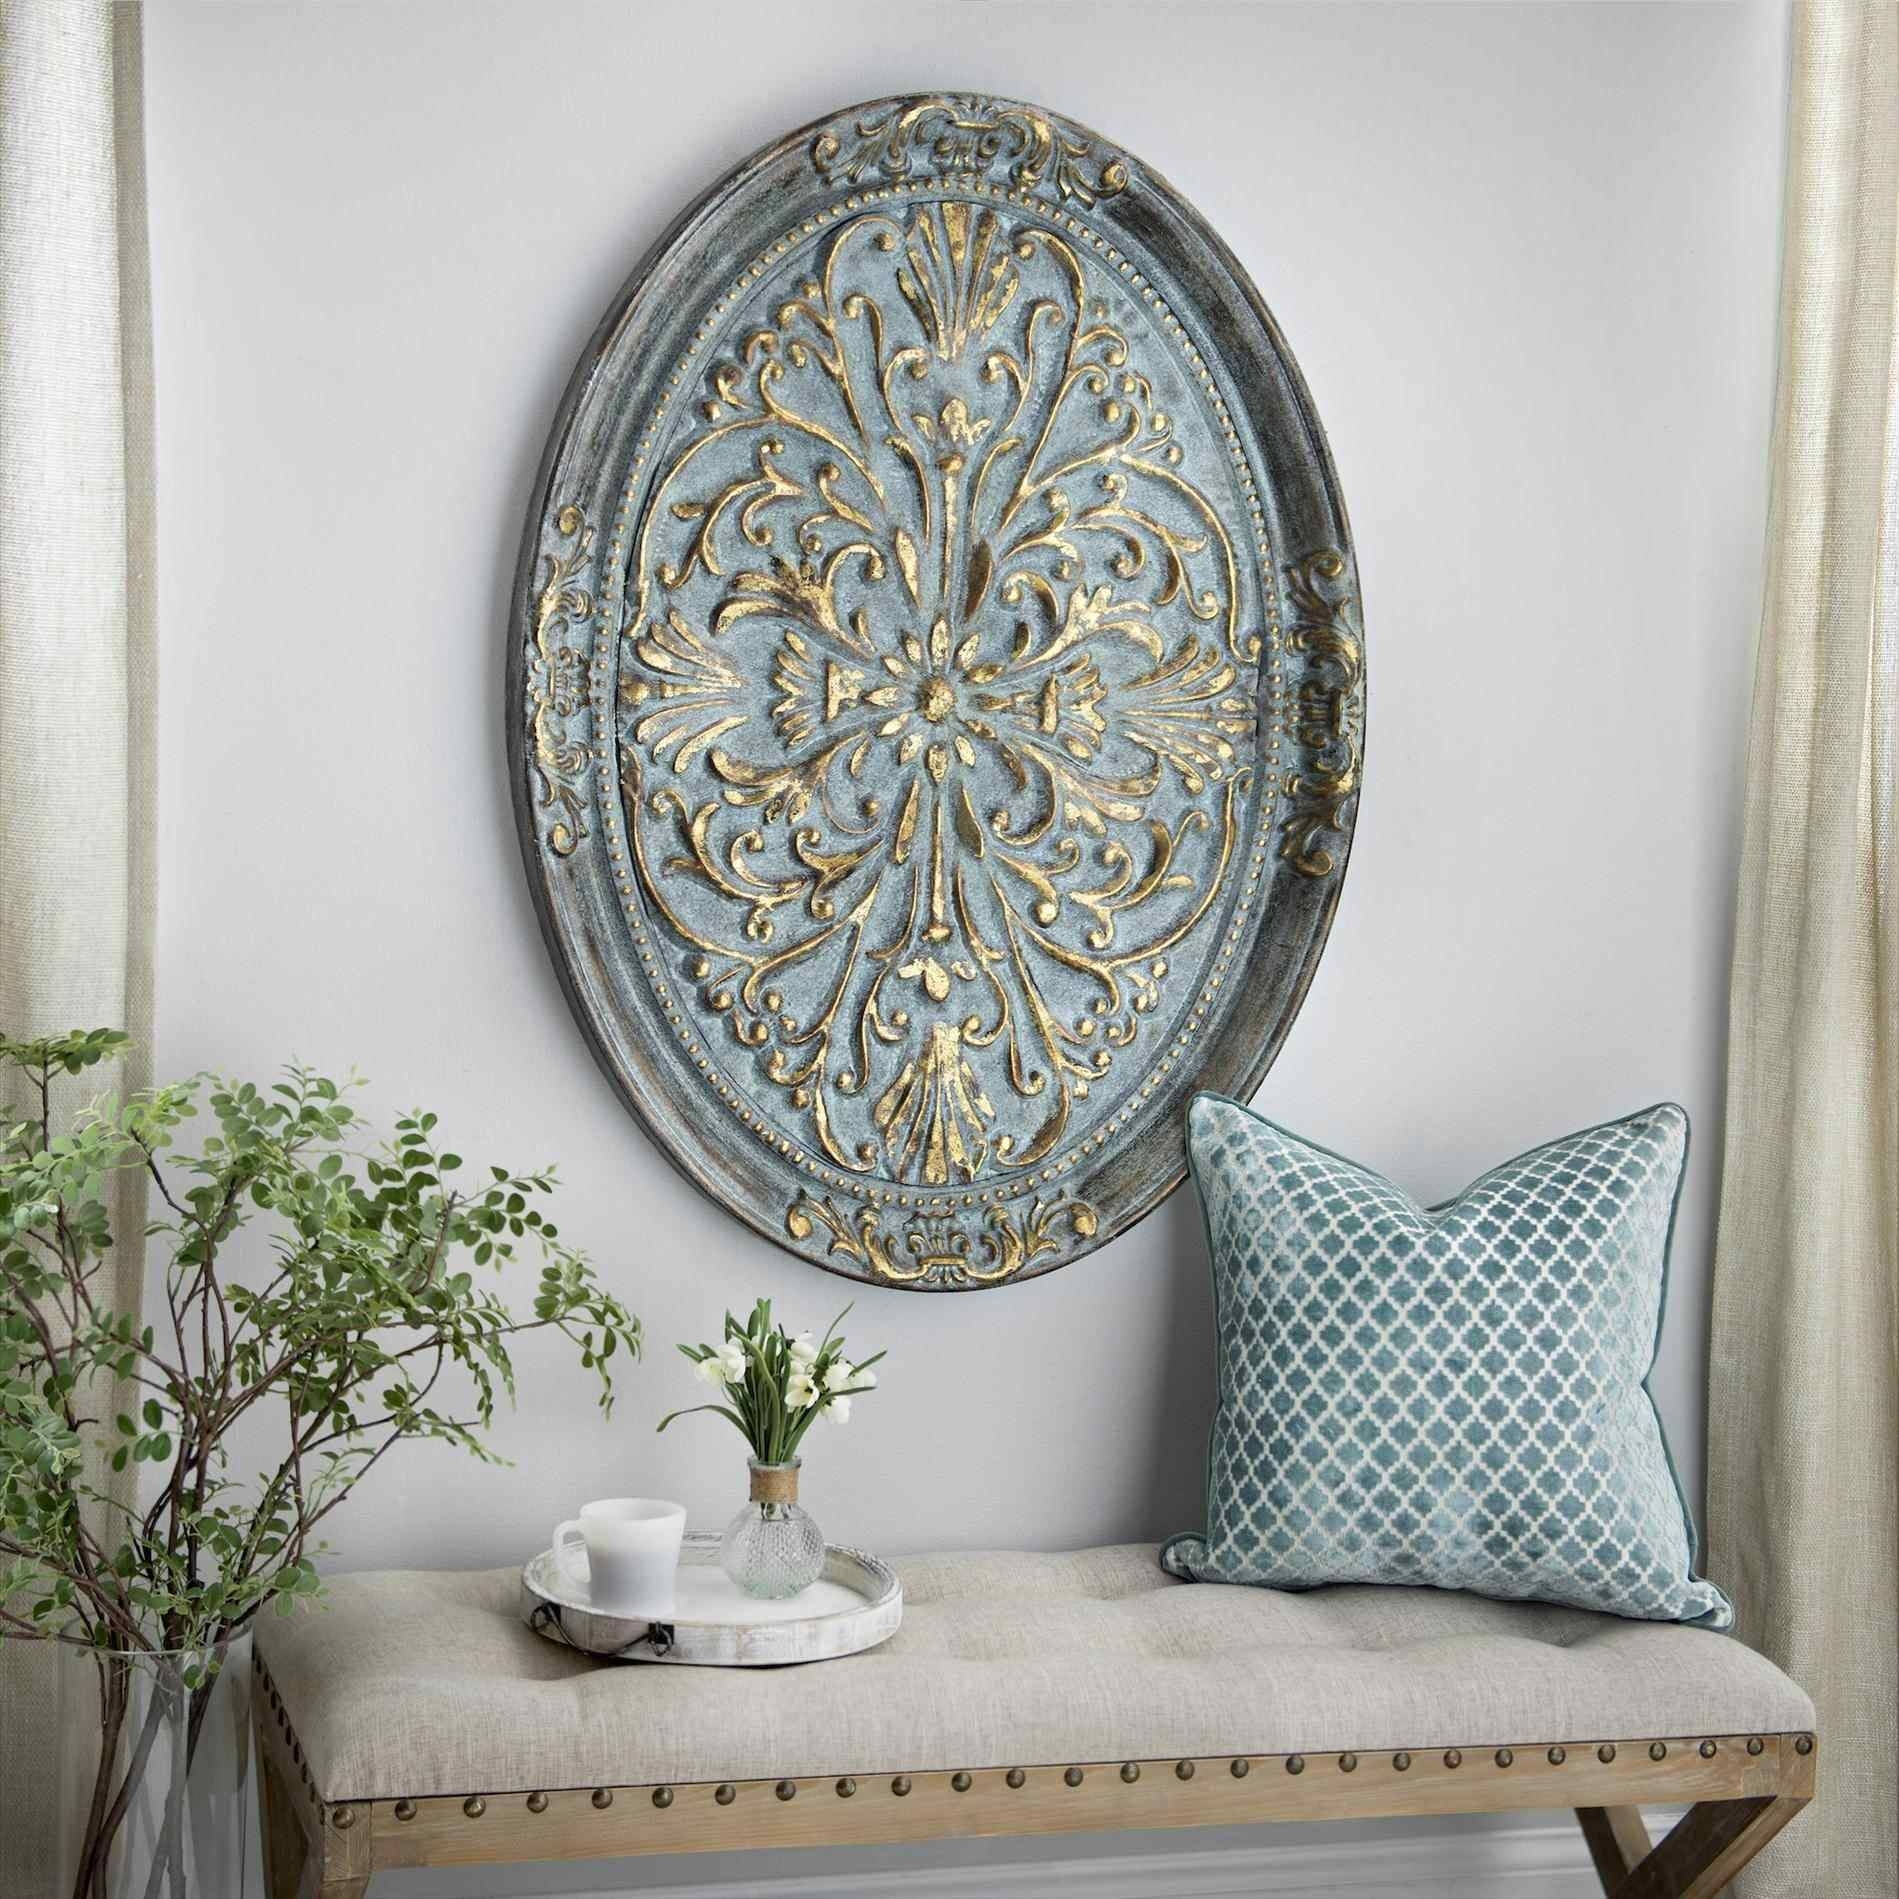 Metallic Decor Design Home Accents 20 Collection Of Kirkland Metal Wall Art